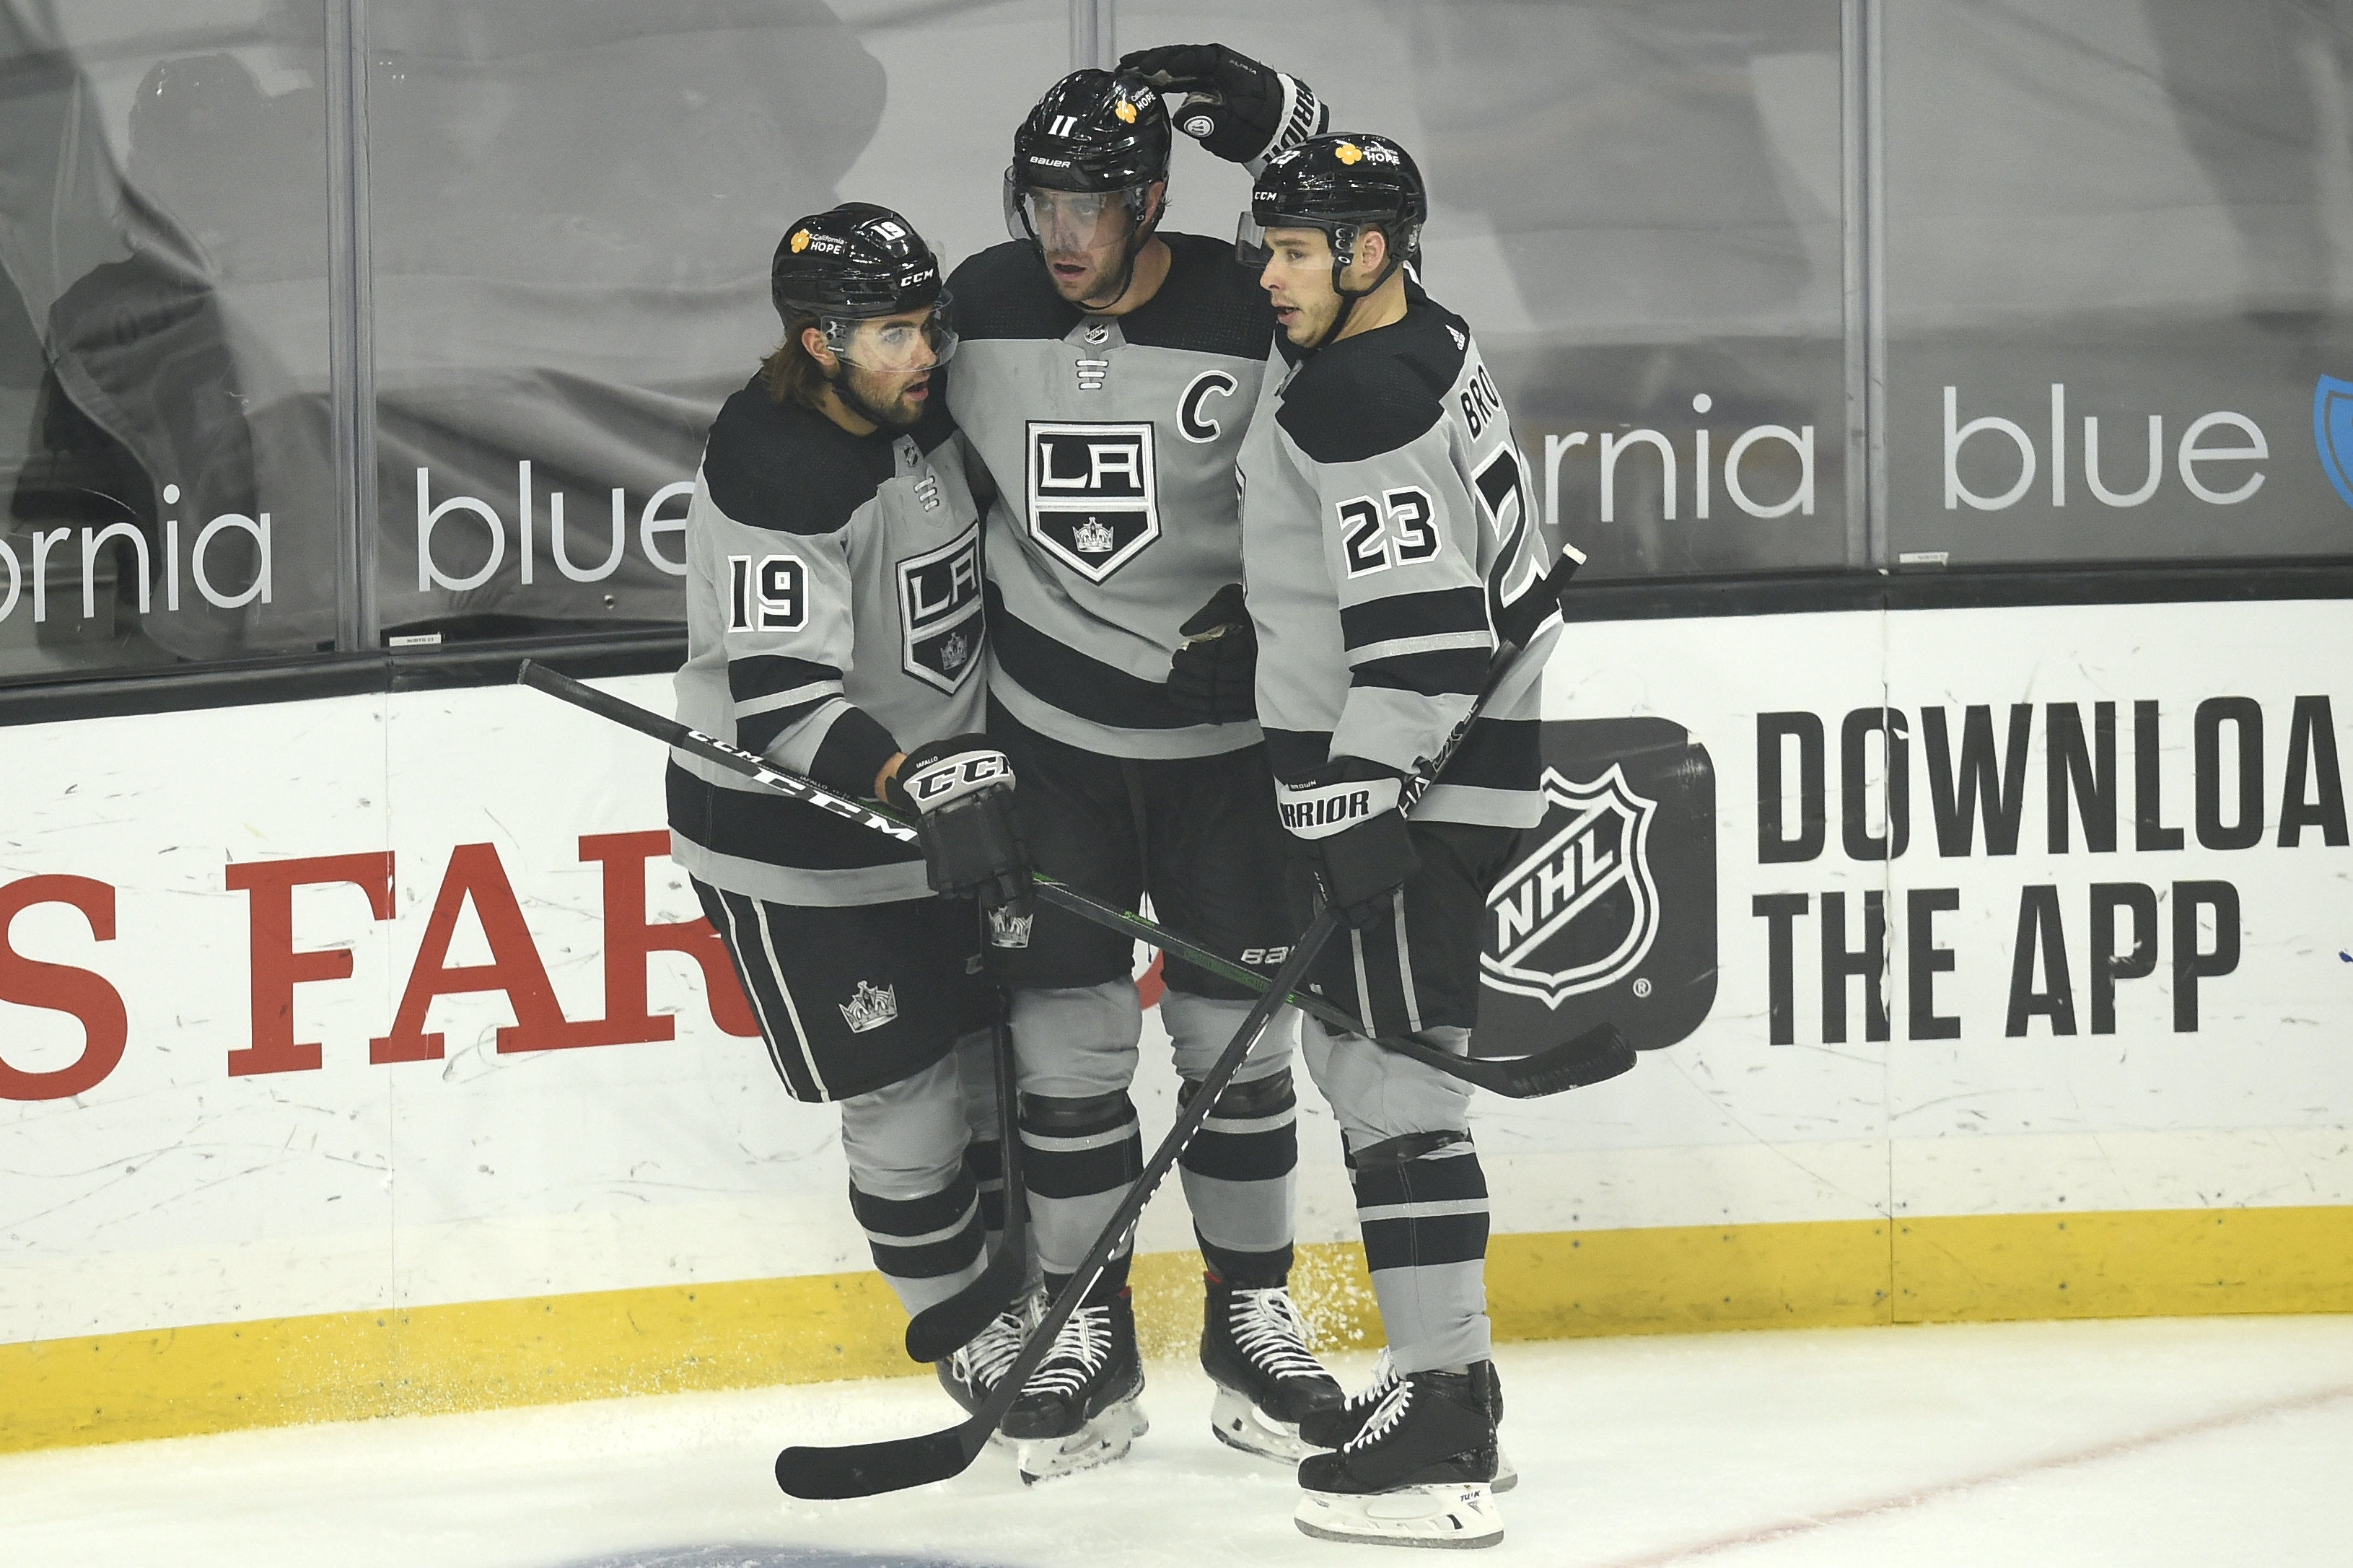 Los Angeles Kings center Anze Kopitar (center) celebrates his goal with right wing Dustin Brown (23) and right wing Alex Iafallo (19) during the first period at Staples Center.